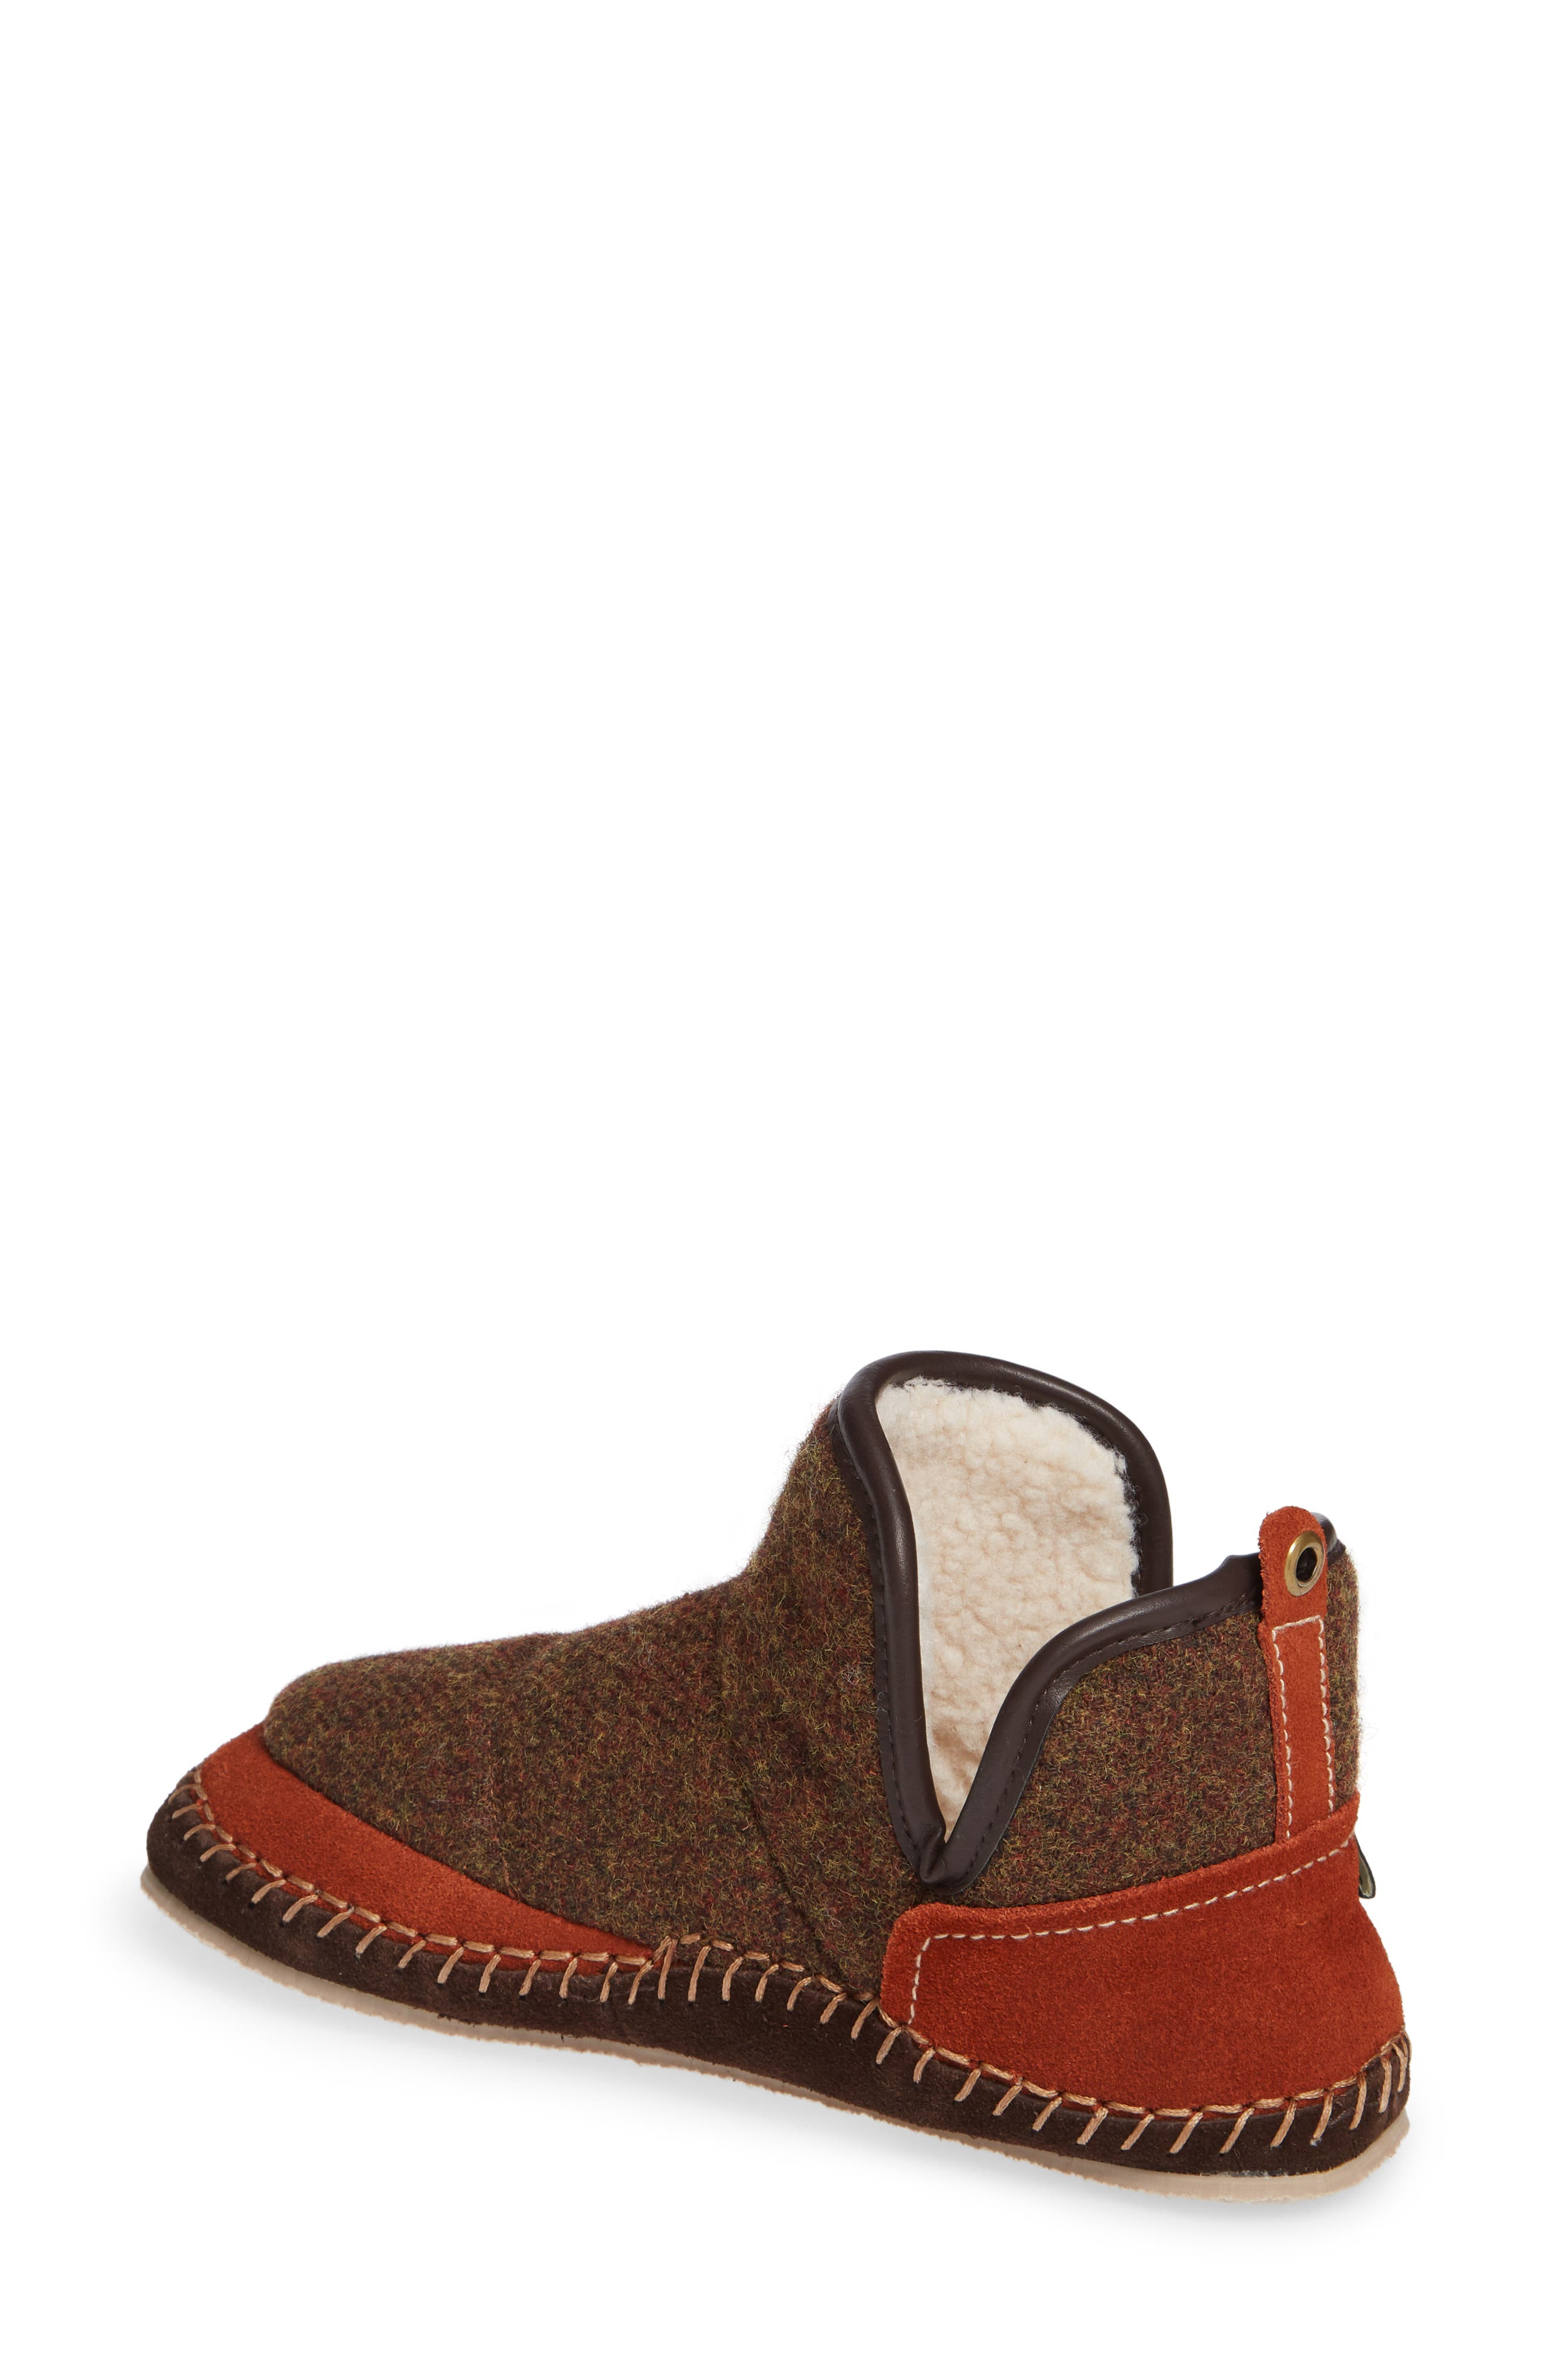 WOOLRICH,                             Glamper Slipper Bootie,                             Alternate thumbnail 2, color,                             SPICED CIDER WOOL